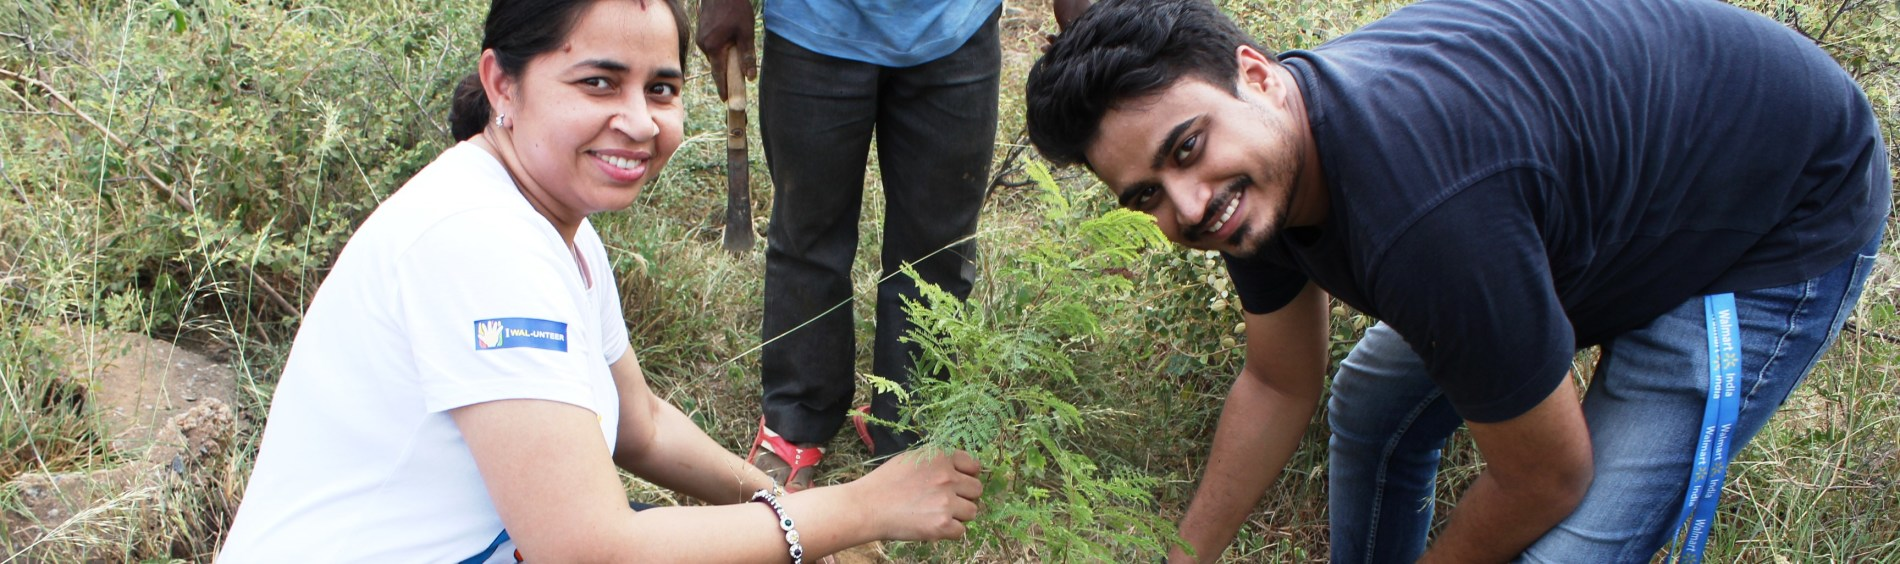 Walmart India associates volunteer by planting trees